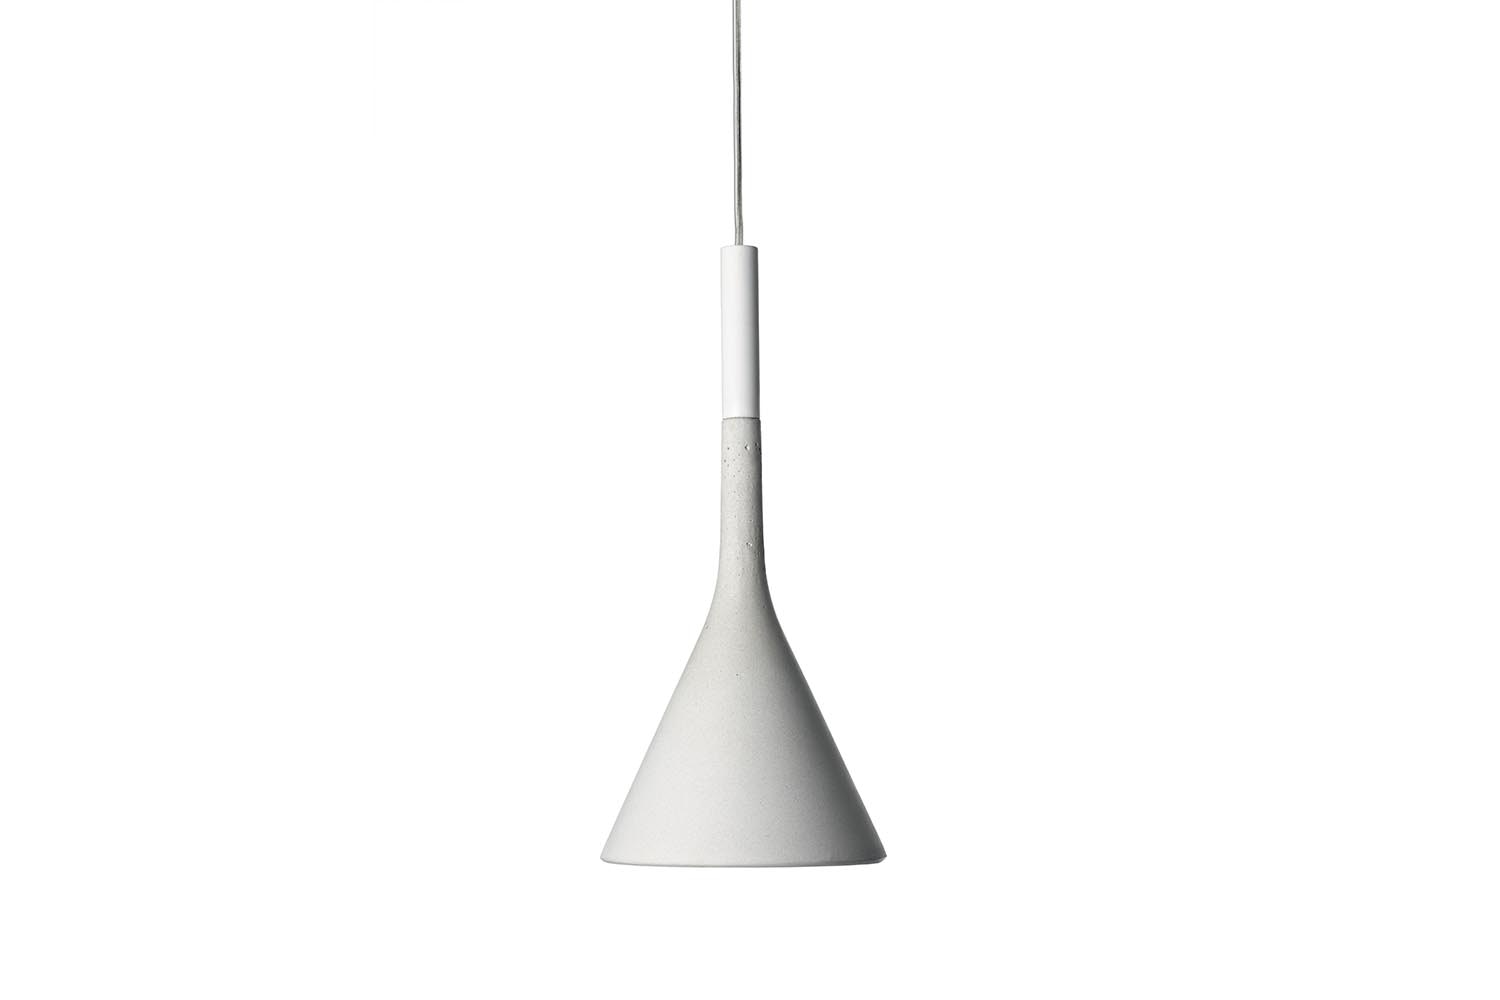 Aplomb Suspension Lamp by Lucidi & Pevere for Foscarini